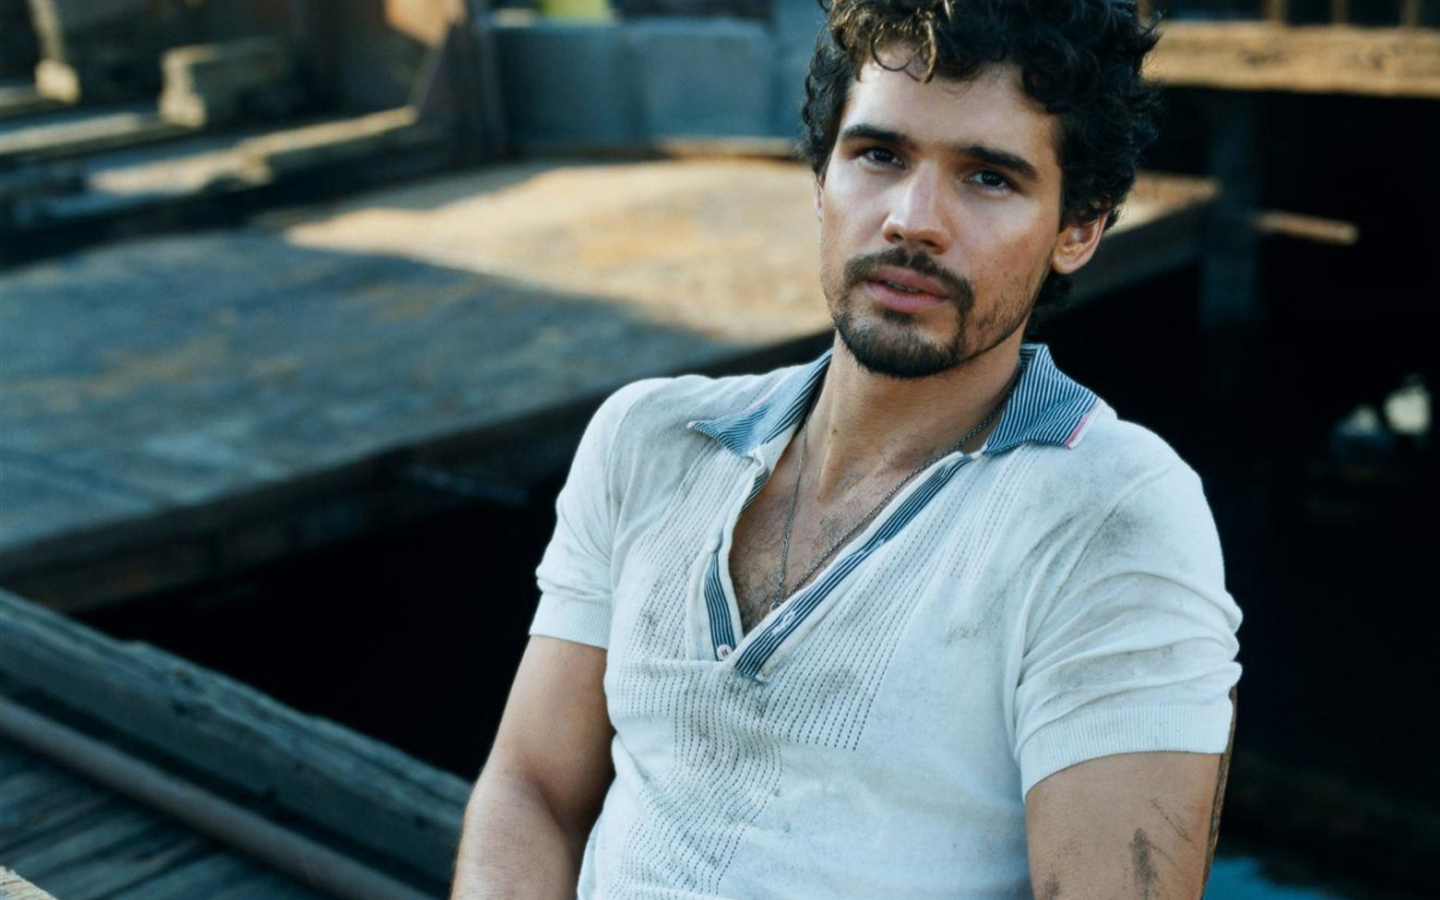 Steven Strait Profile: The Expanse (Syfy 2015